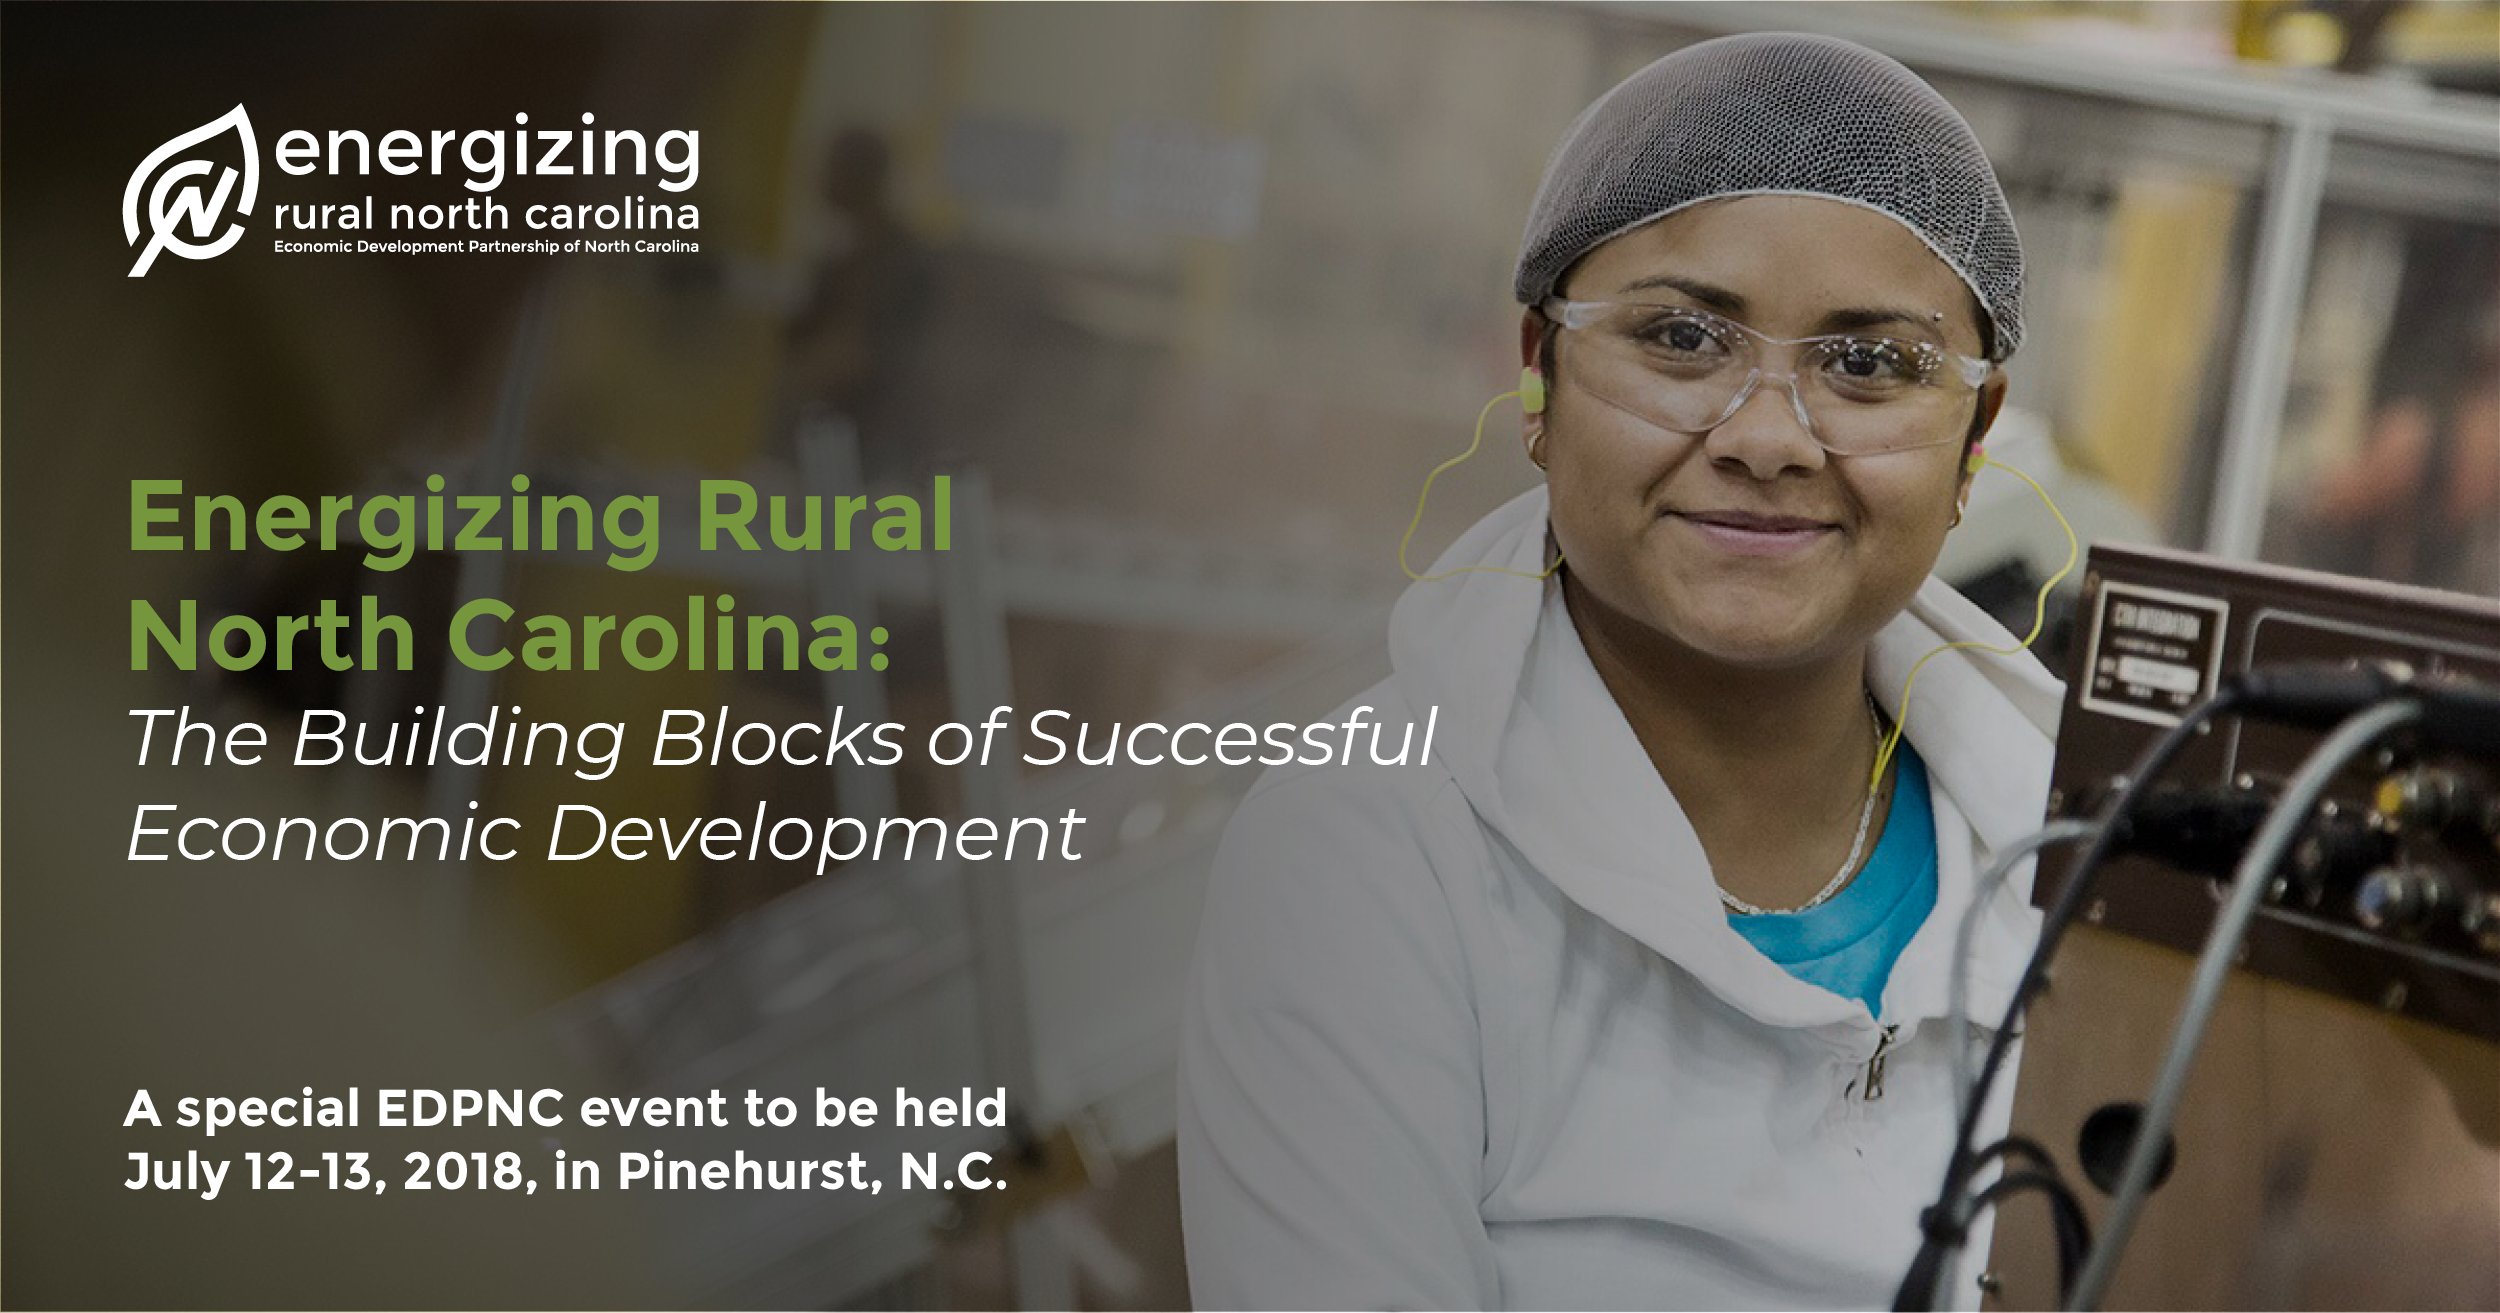 Economic Developers Statewide to Convene on 5 Building Blocks of Rural Prosperity